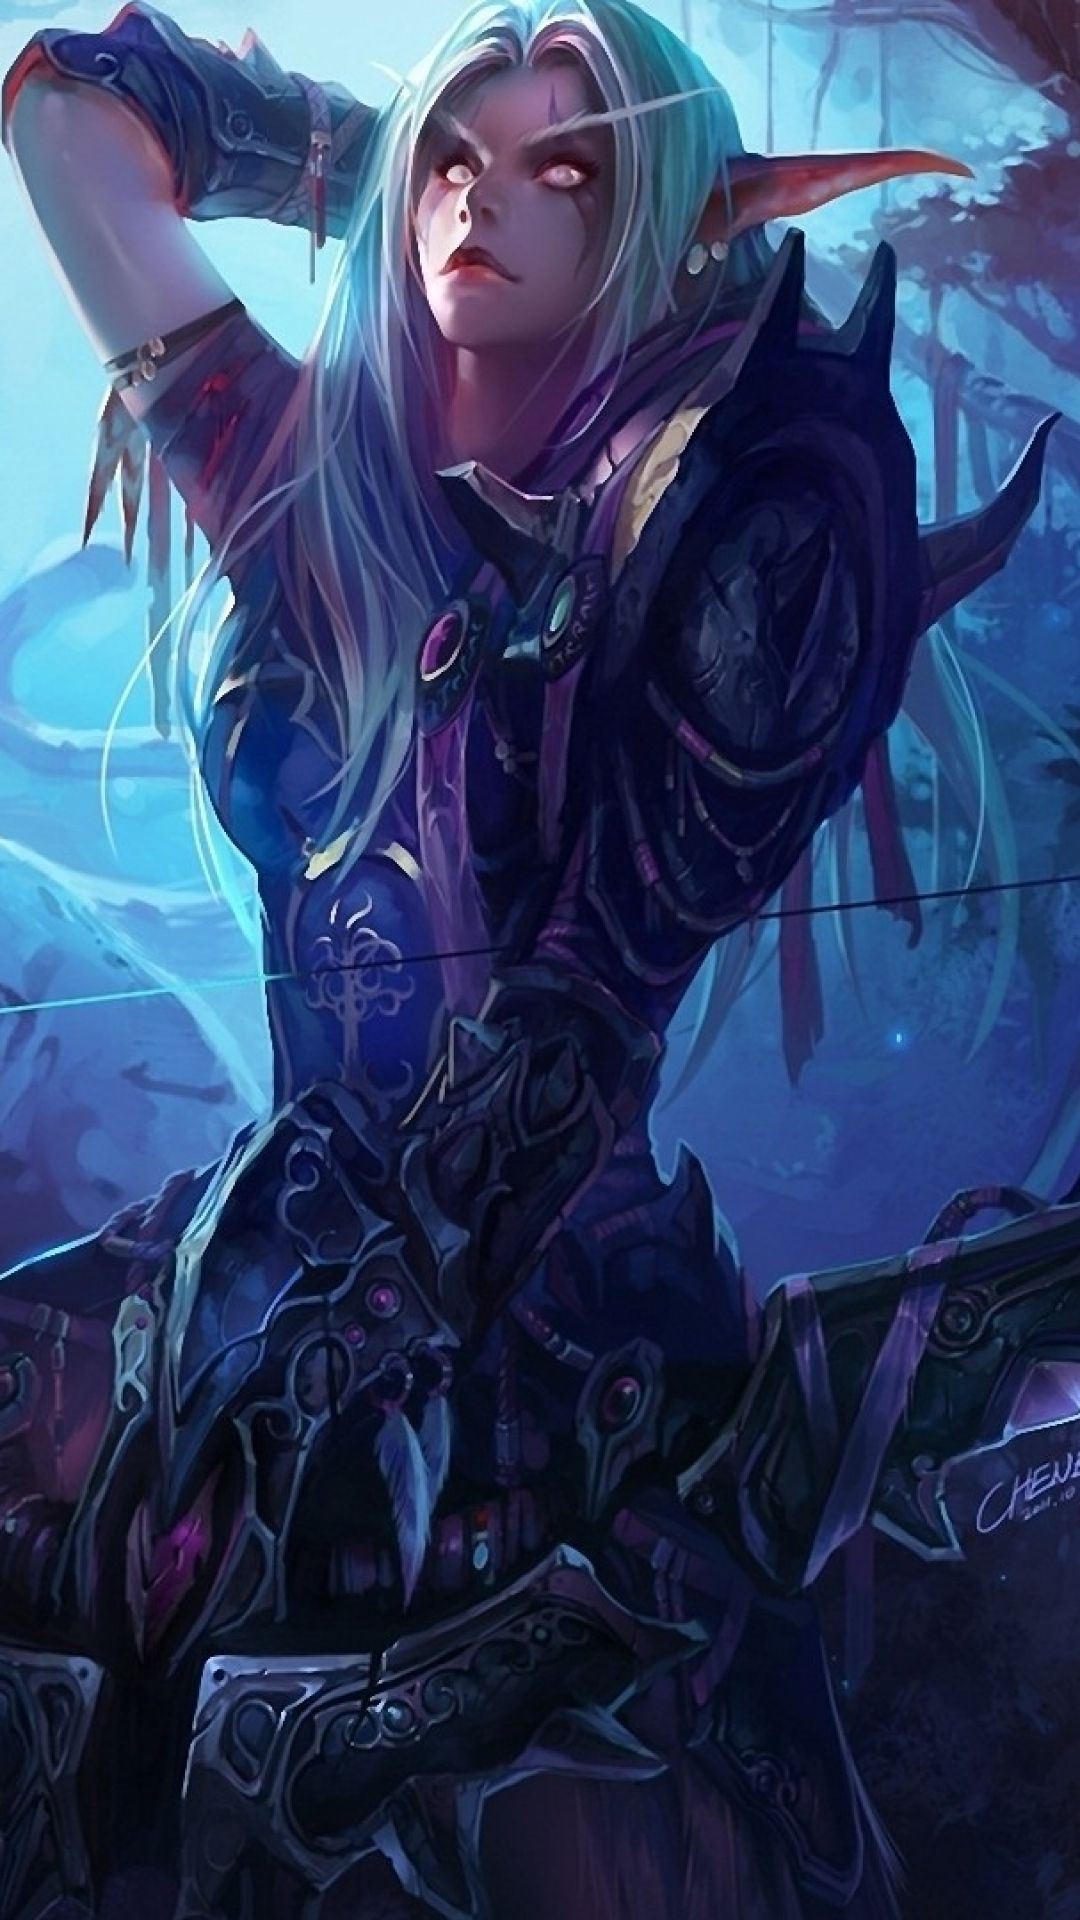 World Of Warcraft Iphone Wallpapers Lby The Continuing World Of